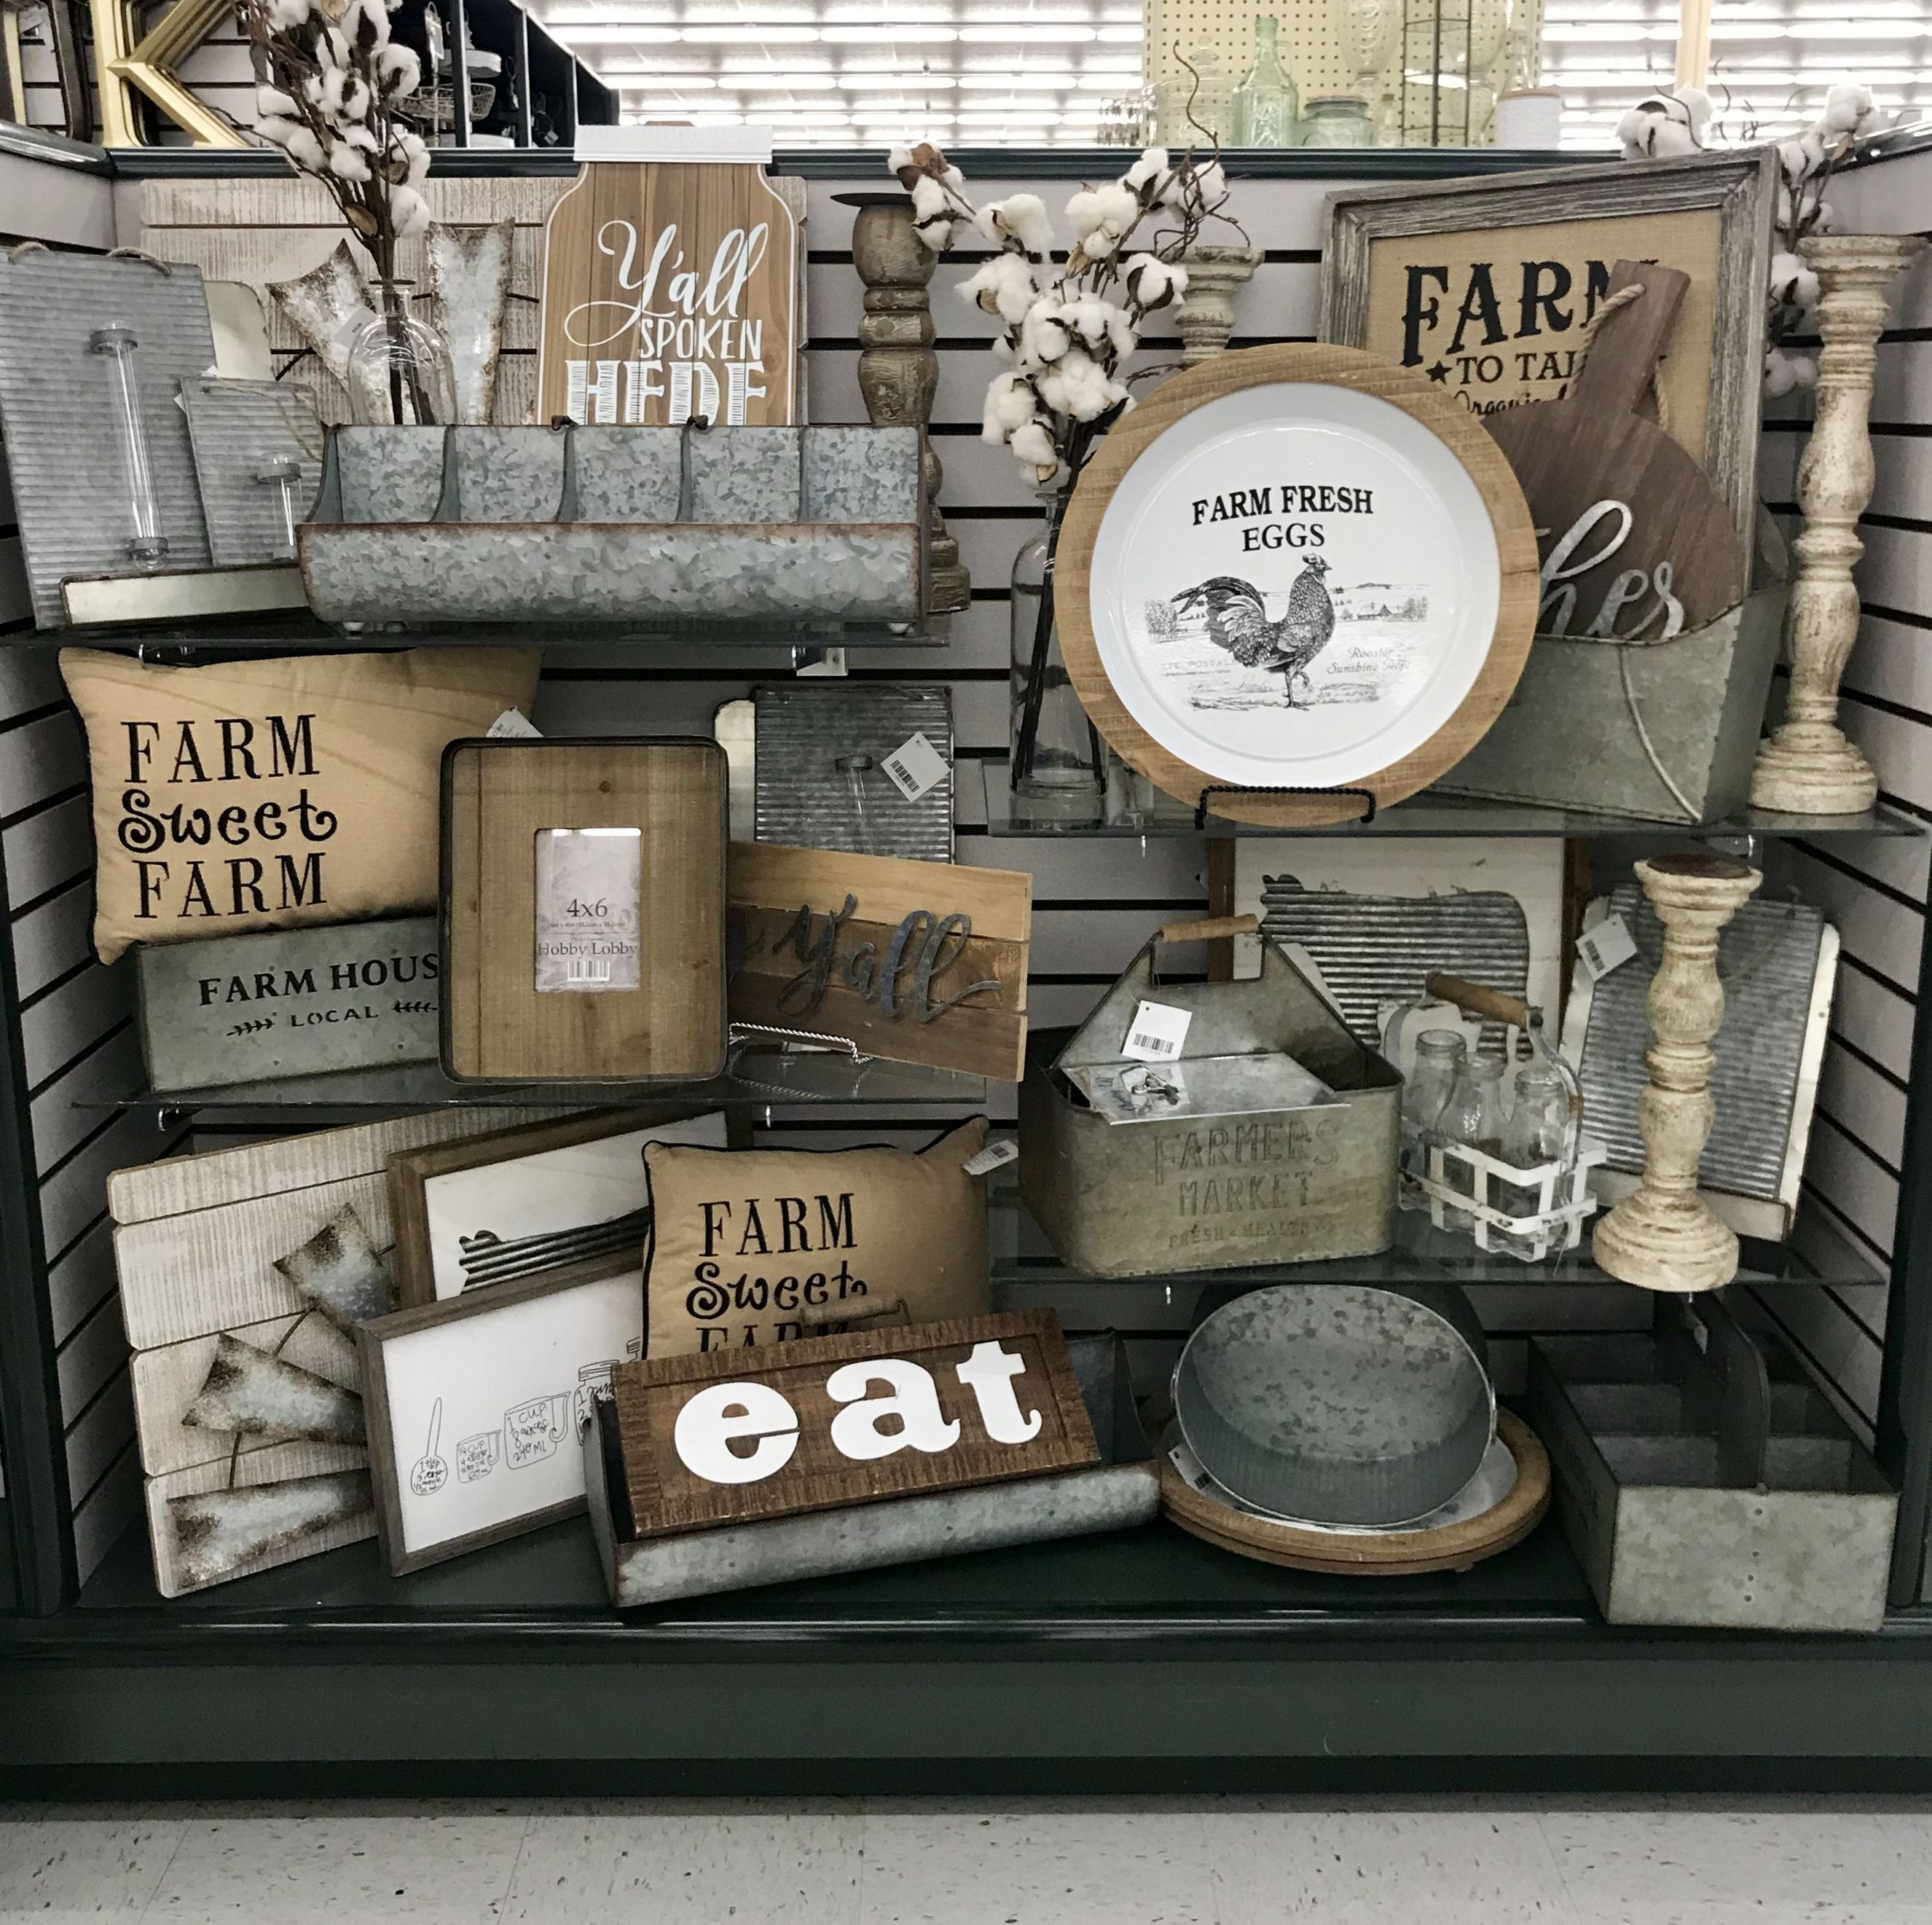 40 creative hobby lobby farmhouse decor ideas hobby lobby decor kitchen decor hobby lobby on kitchen decor themes hobby lobby id=99355